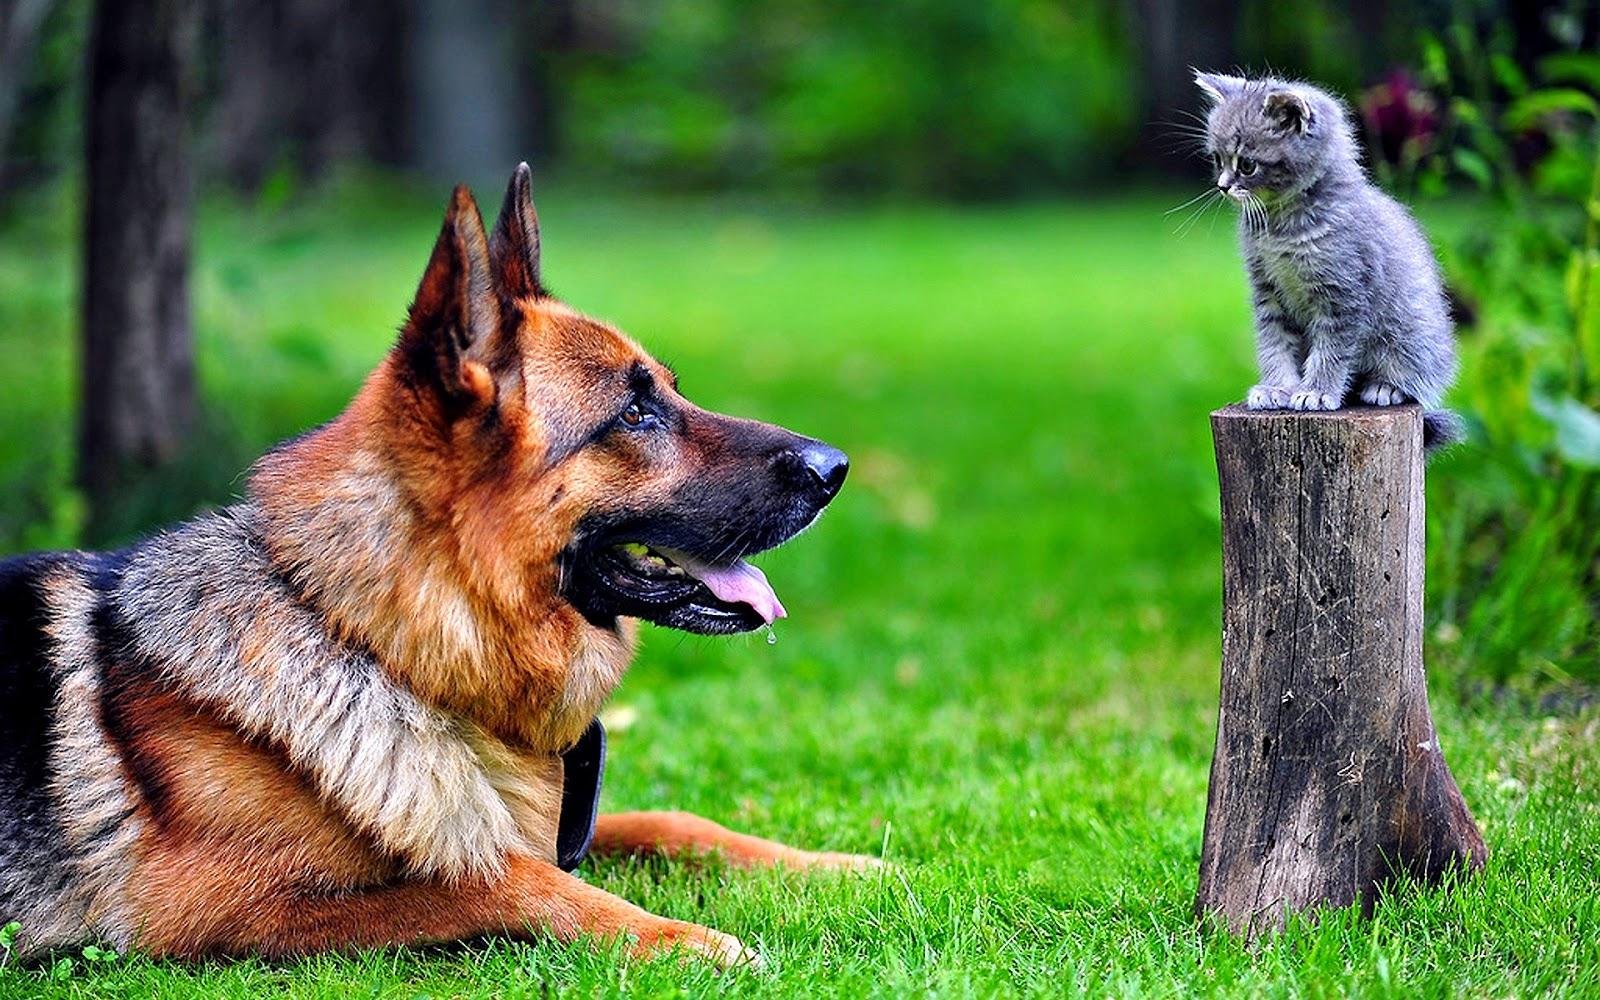 Dog and Cat wallpapers   HD Wallpapers   High Quality 1600x1000